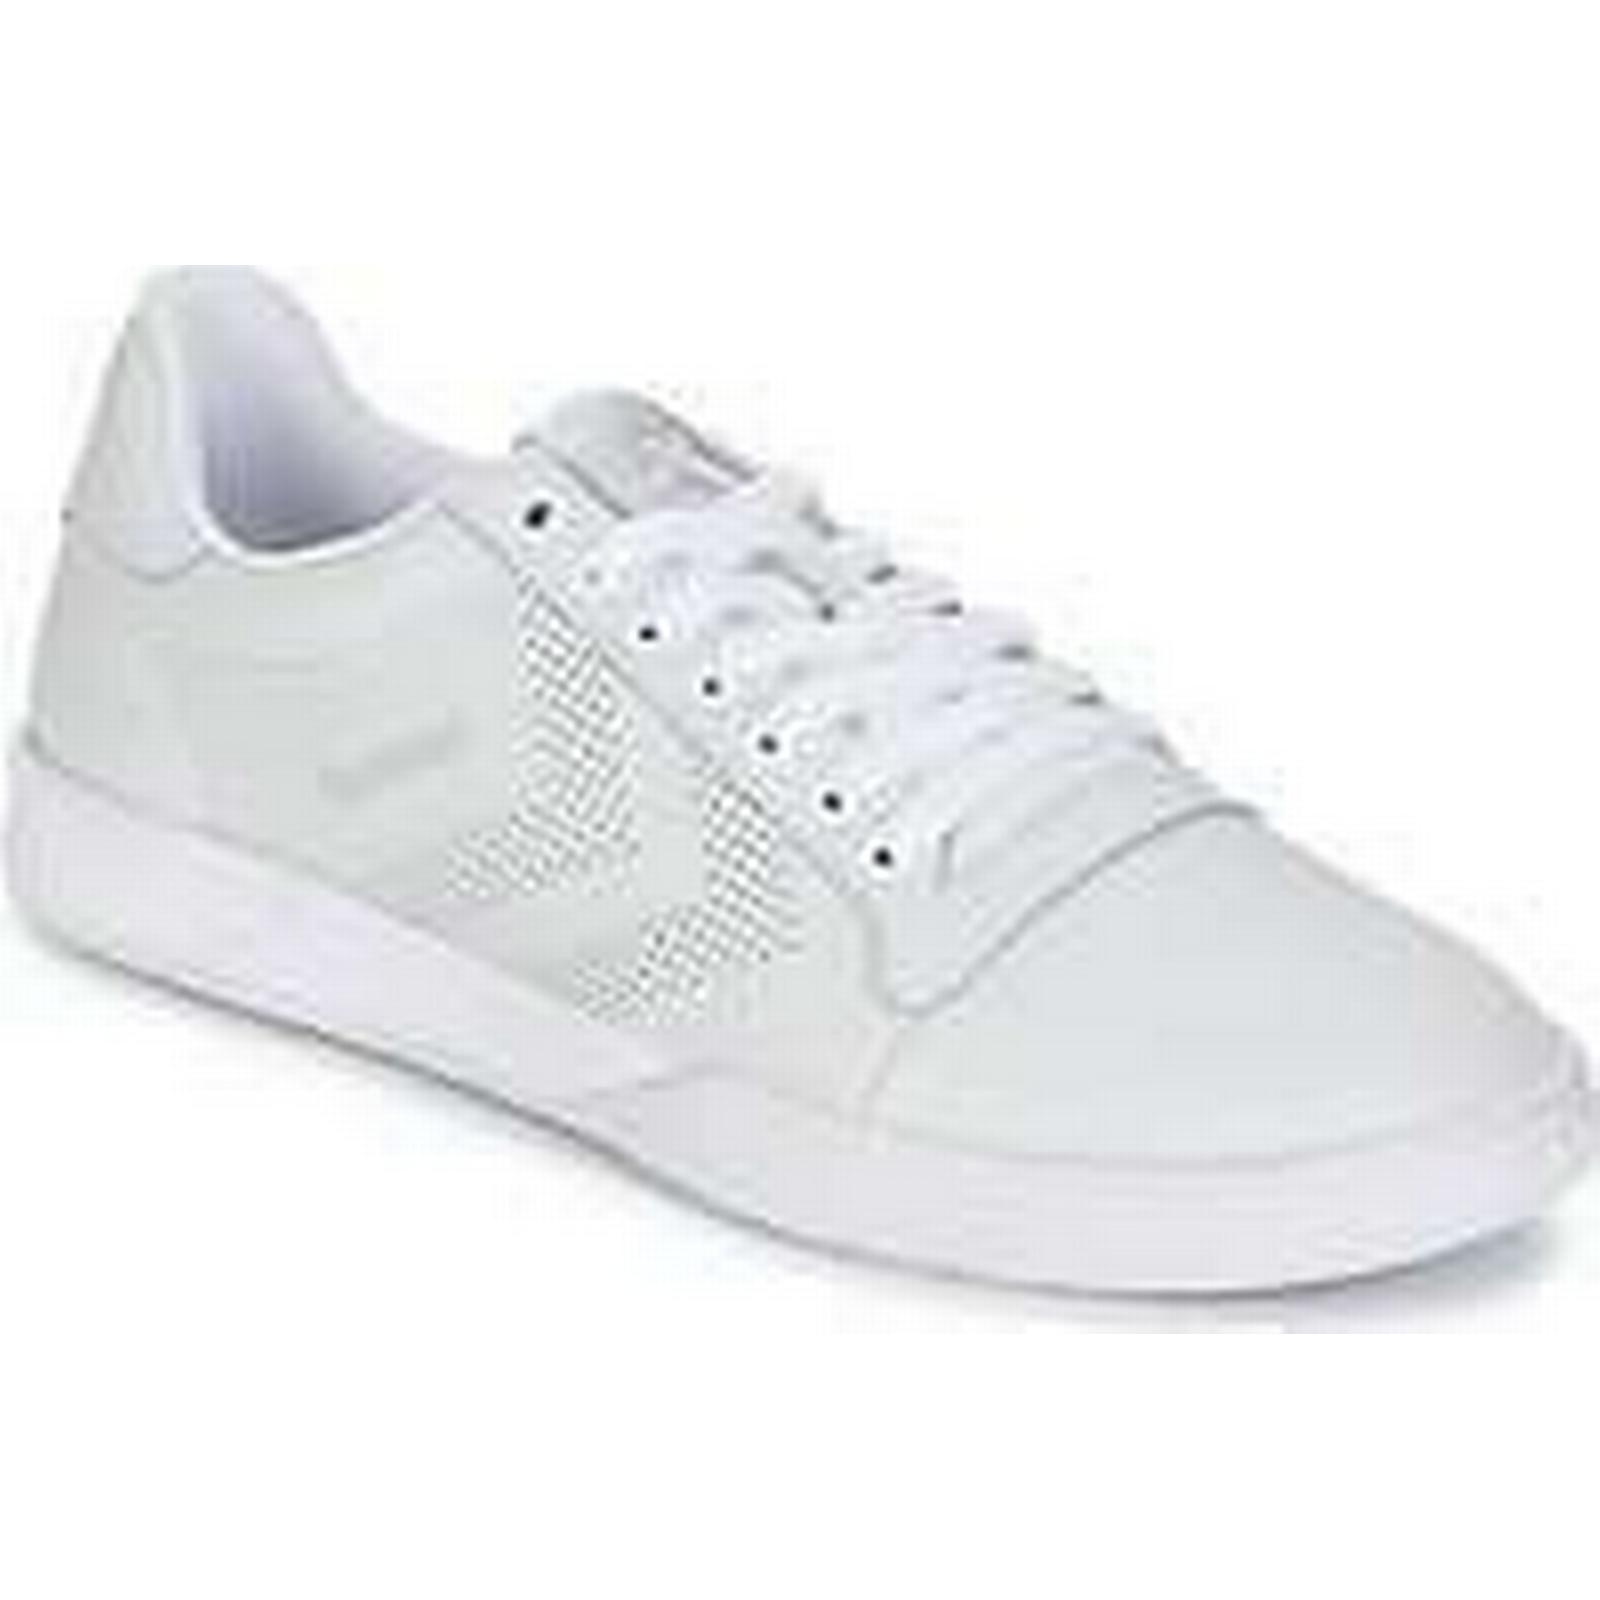 Spartoo.co.uk women's Hummel HML STADIL LO women's Spartoo.co.uk Shoes (Trainers) in White acbd39